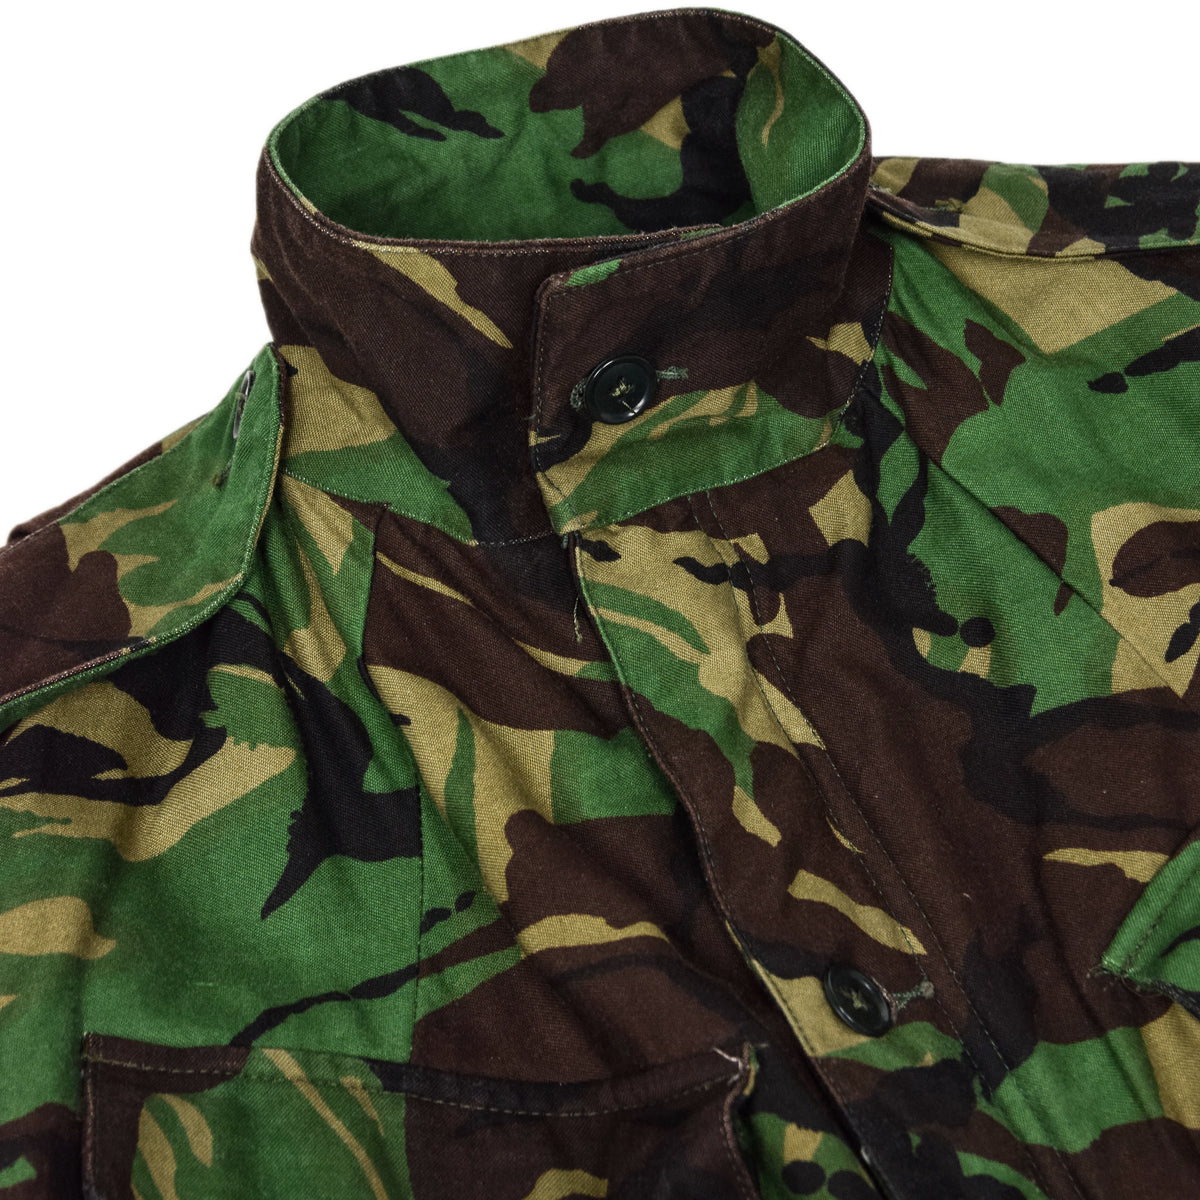 Vintage 80s British Army Combat Smock Woodland DPM Camo Jacket M button up collar